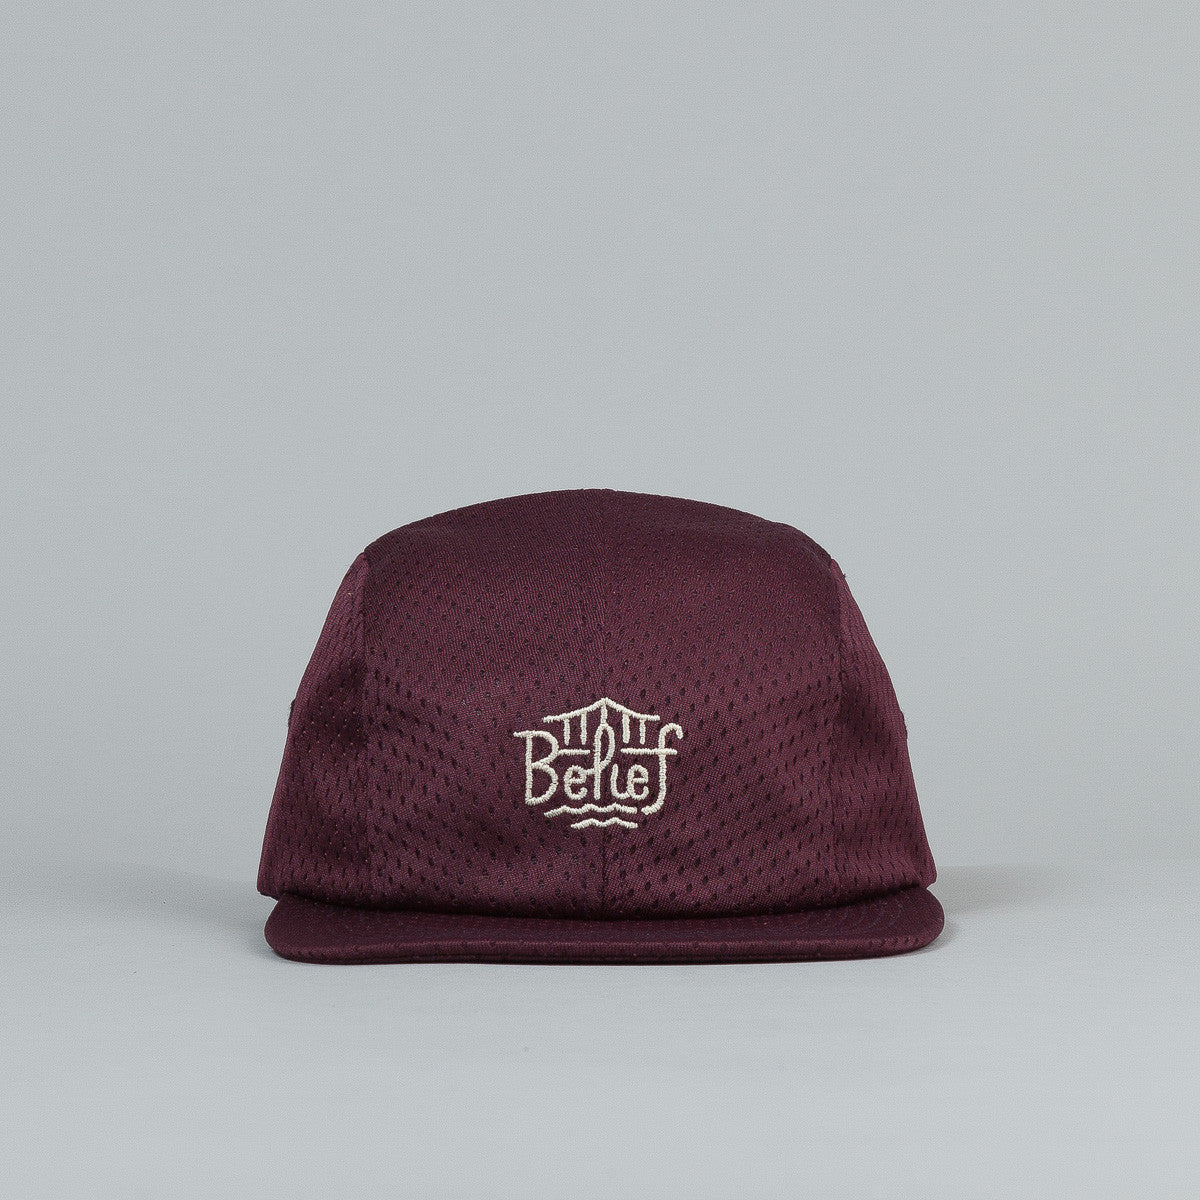 Belief Triboro 4 Panel Cap - Maroon